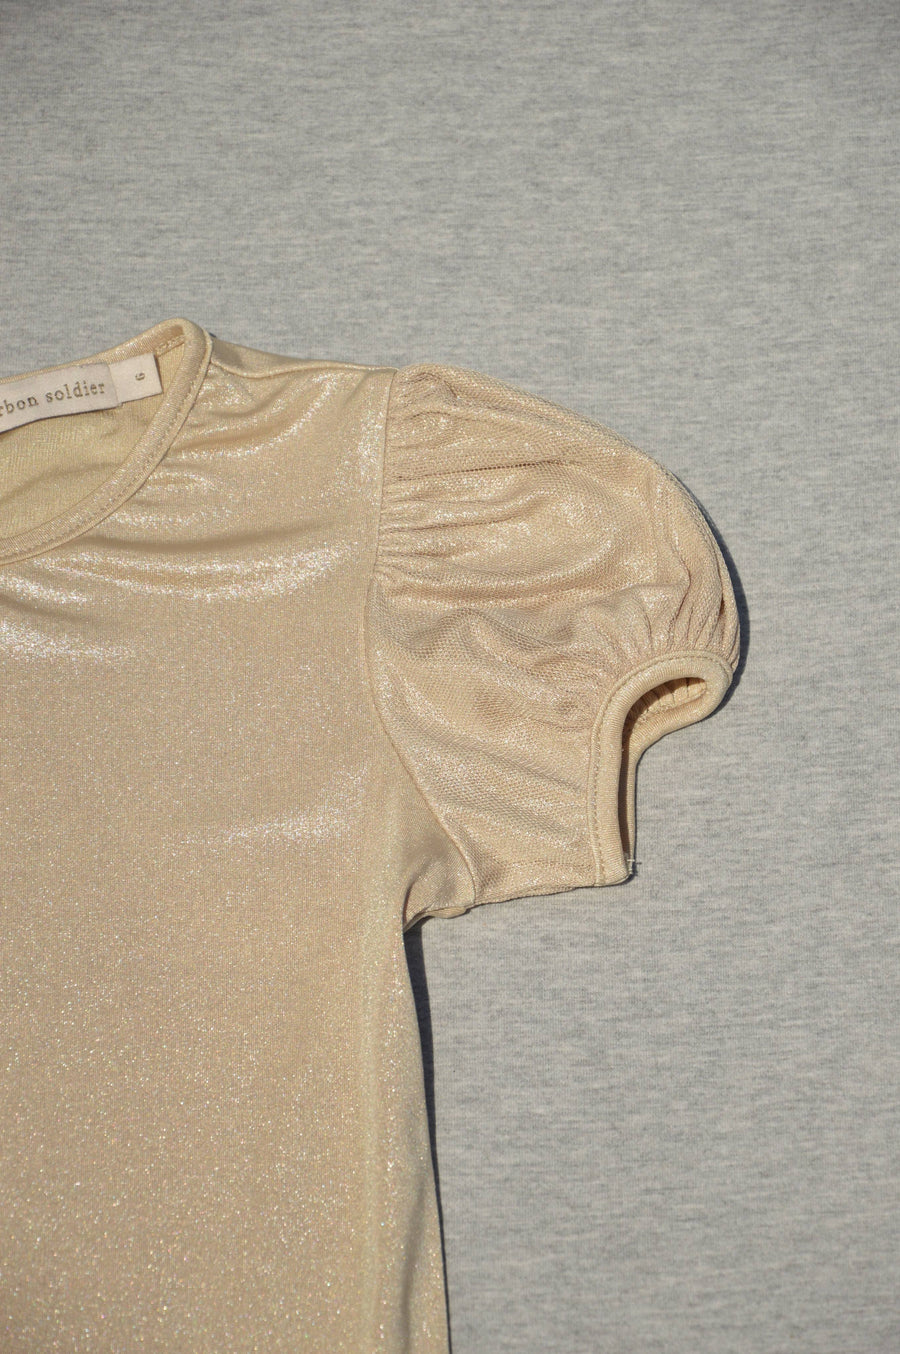 Carbon Soldier - nearly new - gold lamé top, size 6